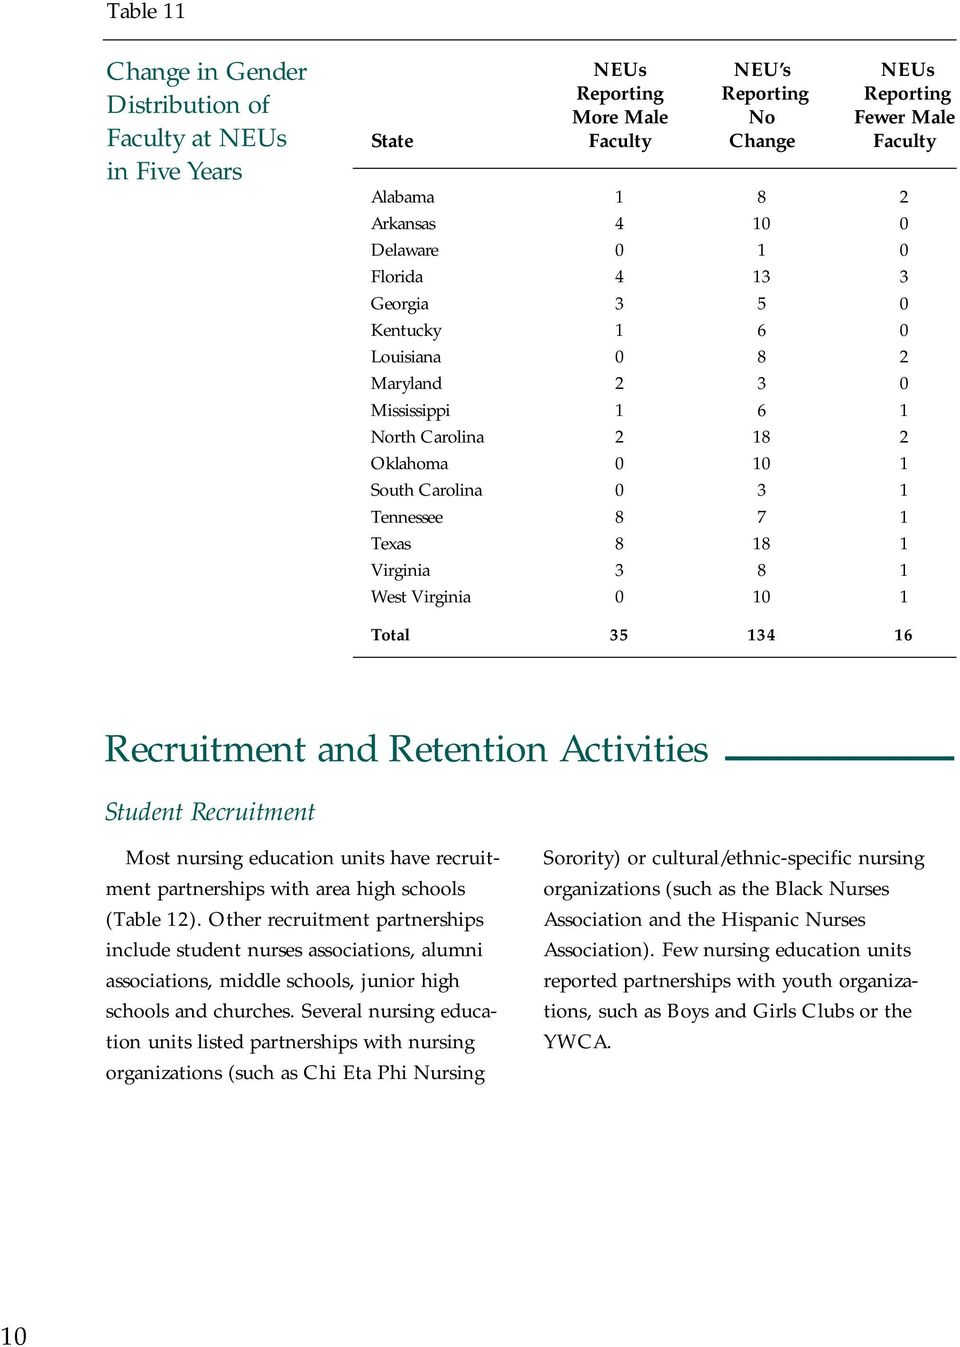 Virginia 3 8 1 West Virginia 0 10 1 Total 35 134 16 Recruitment and Retention Activities Student Recruitment Most nursing education units have recruitment partnerships with area high schools (Table